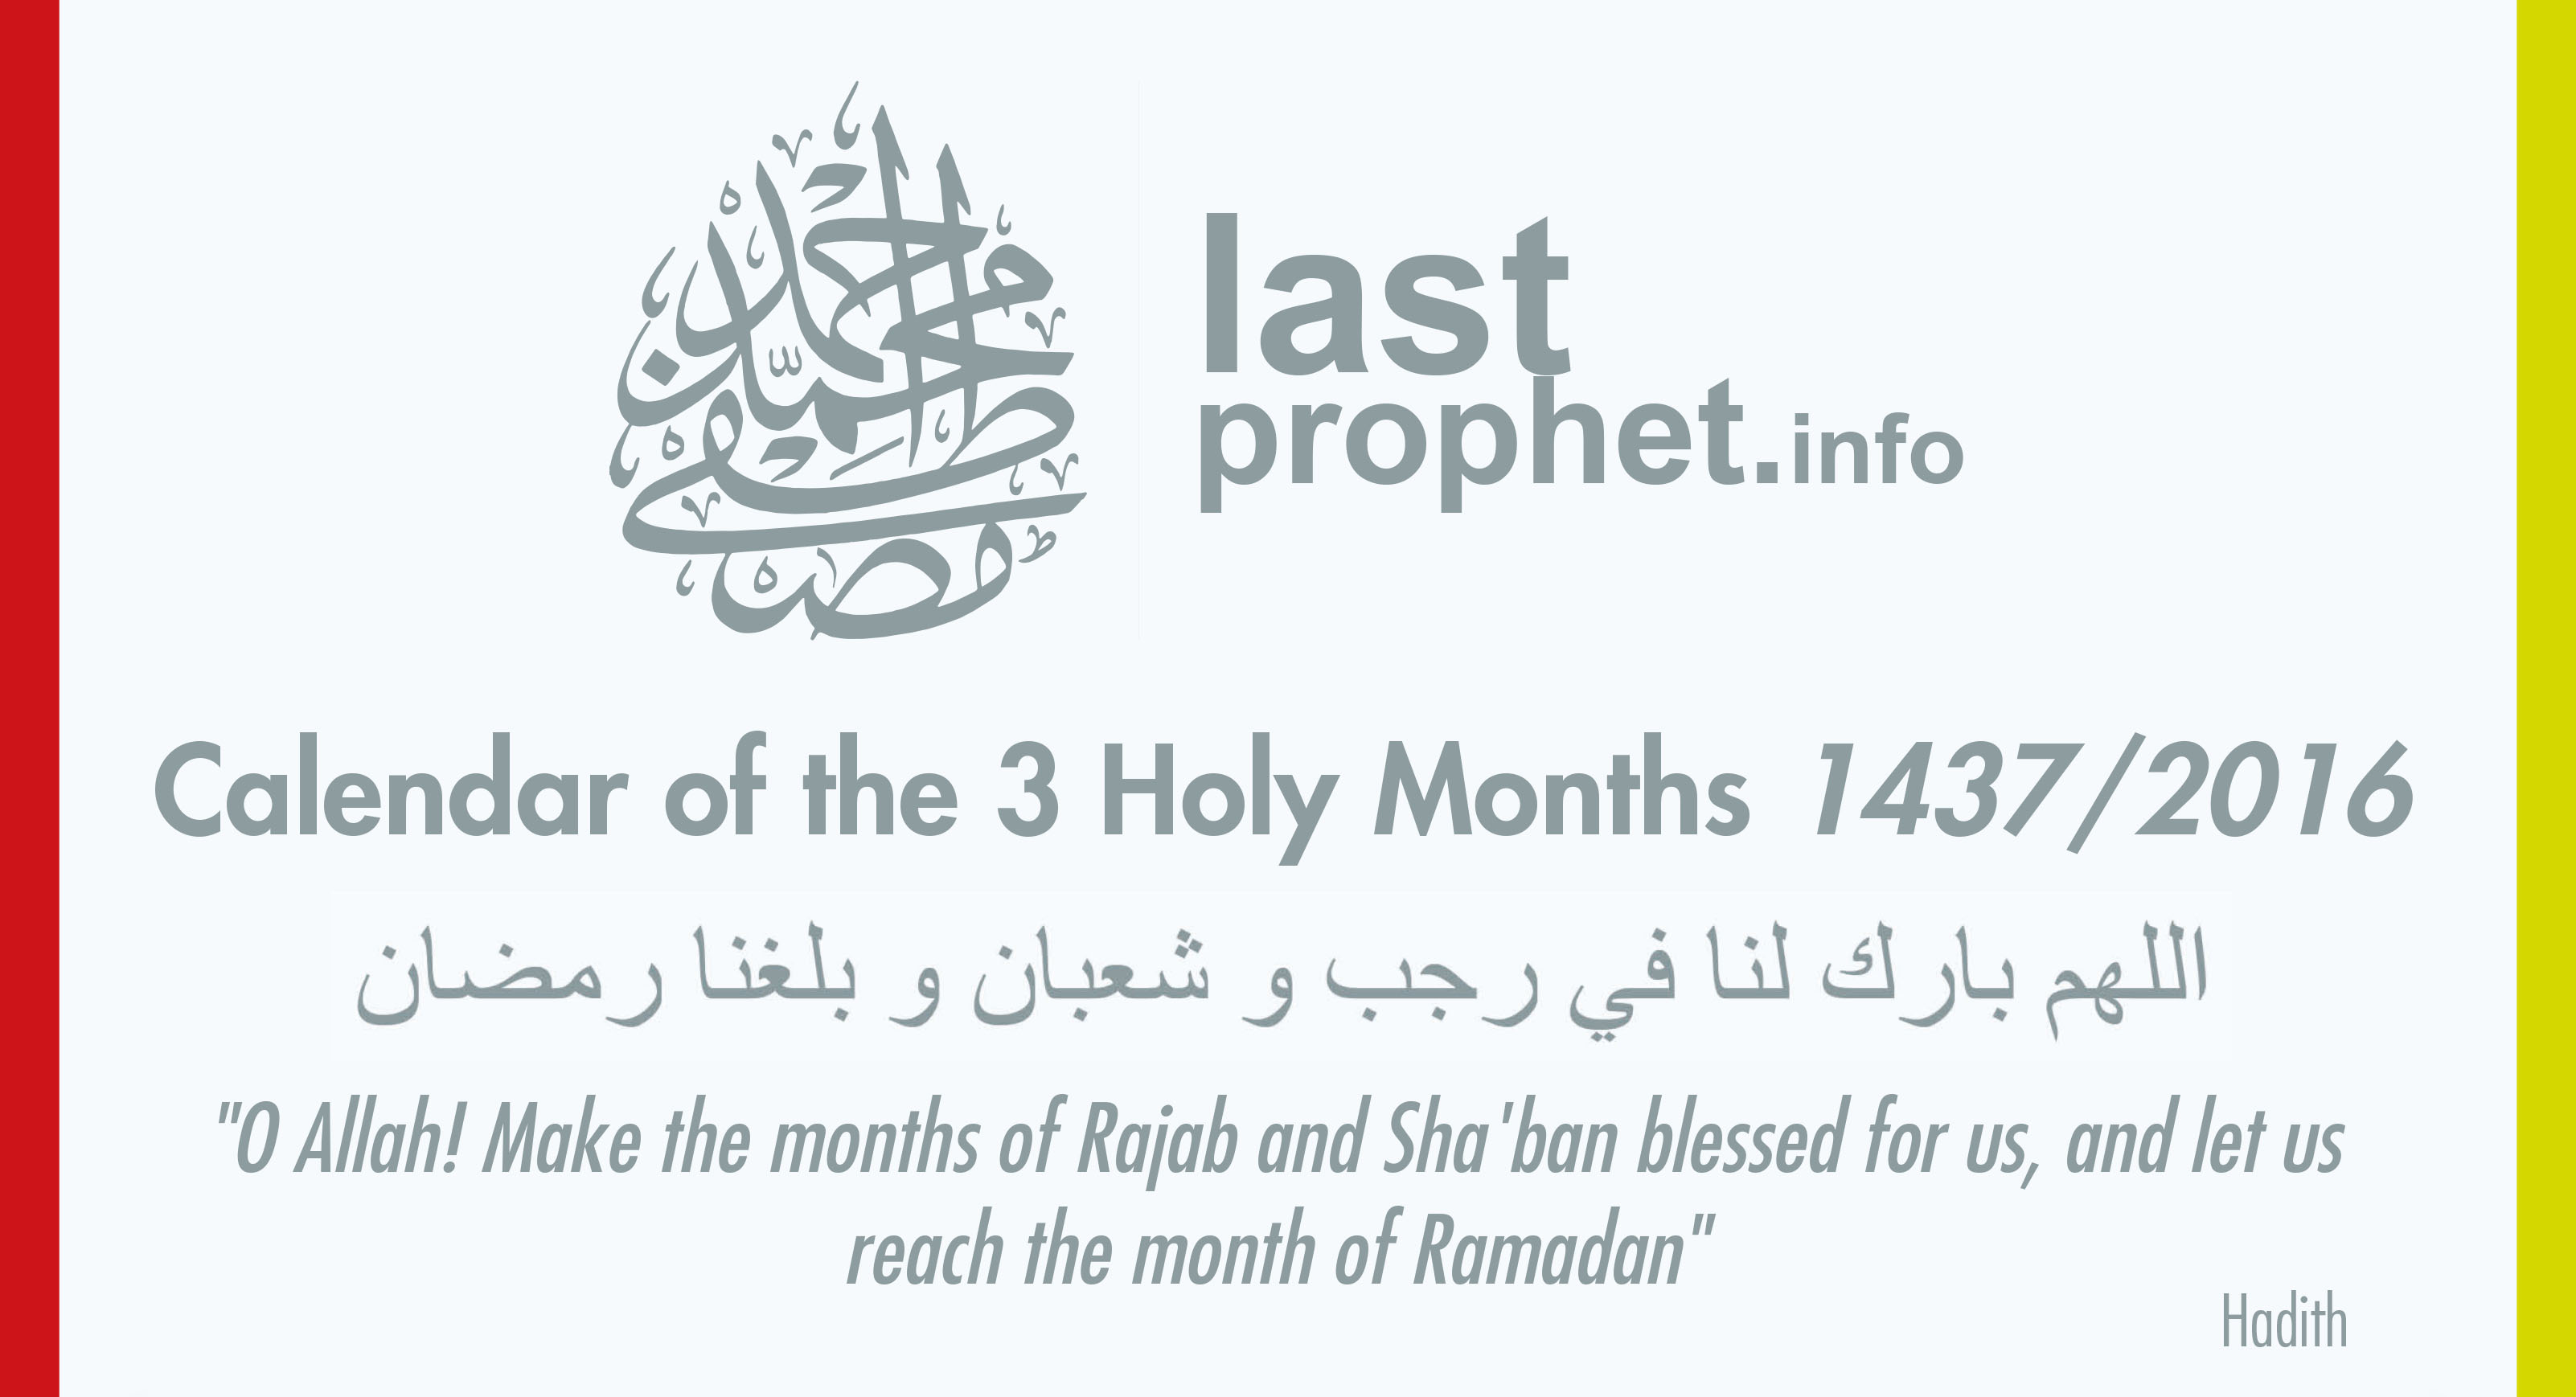 Calender of the 3 Holy Months